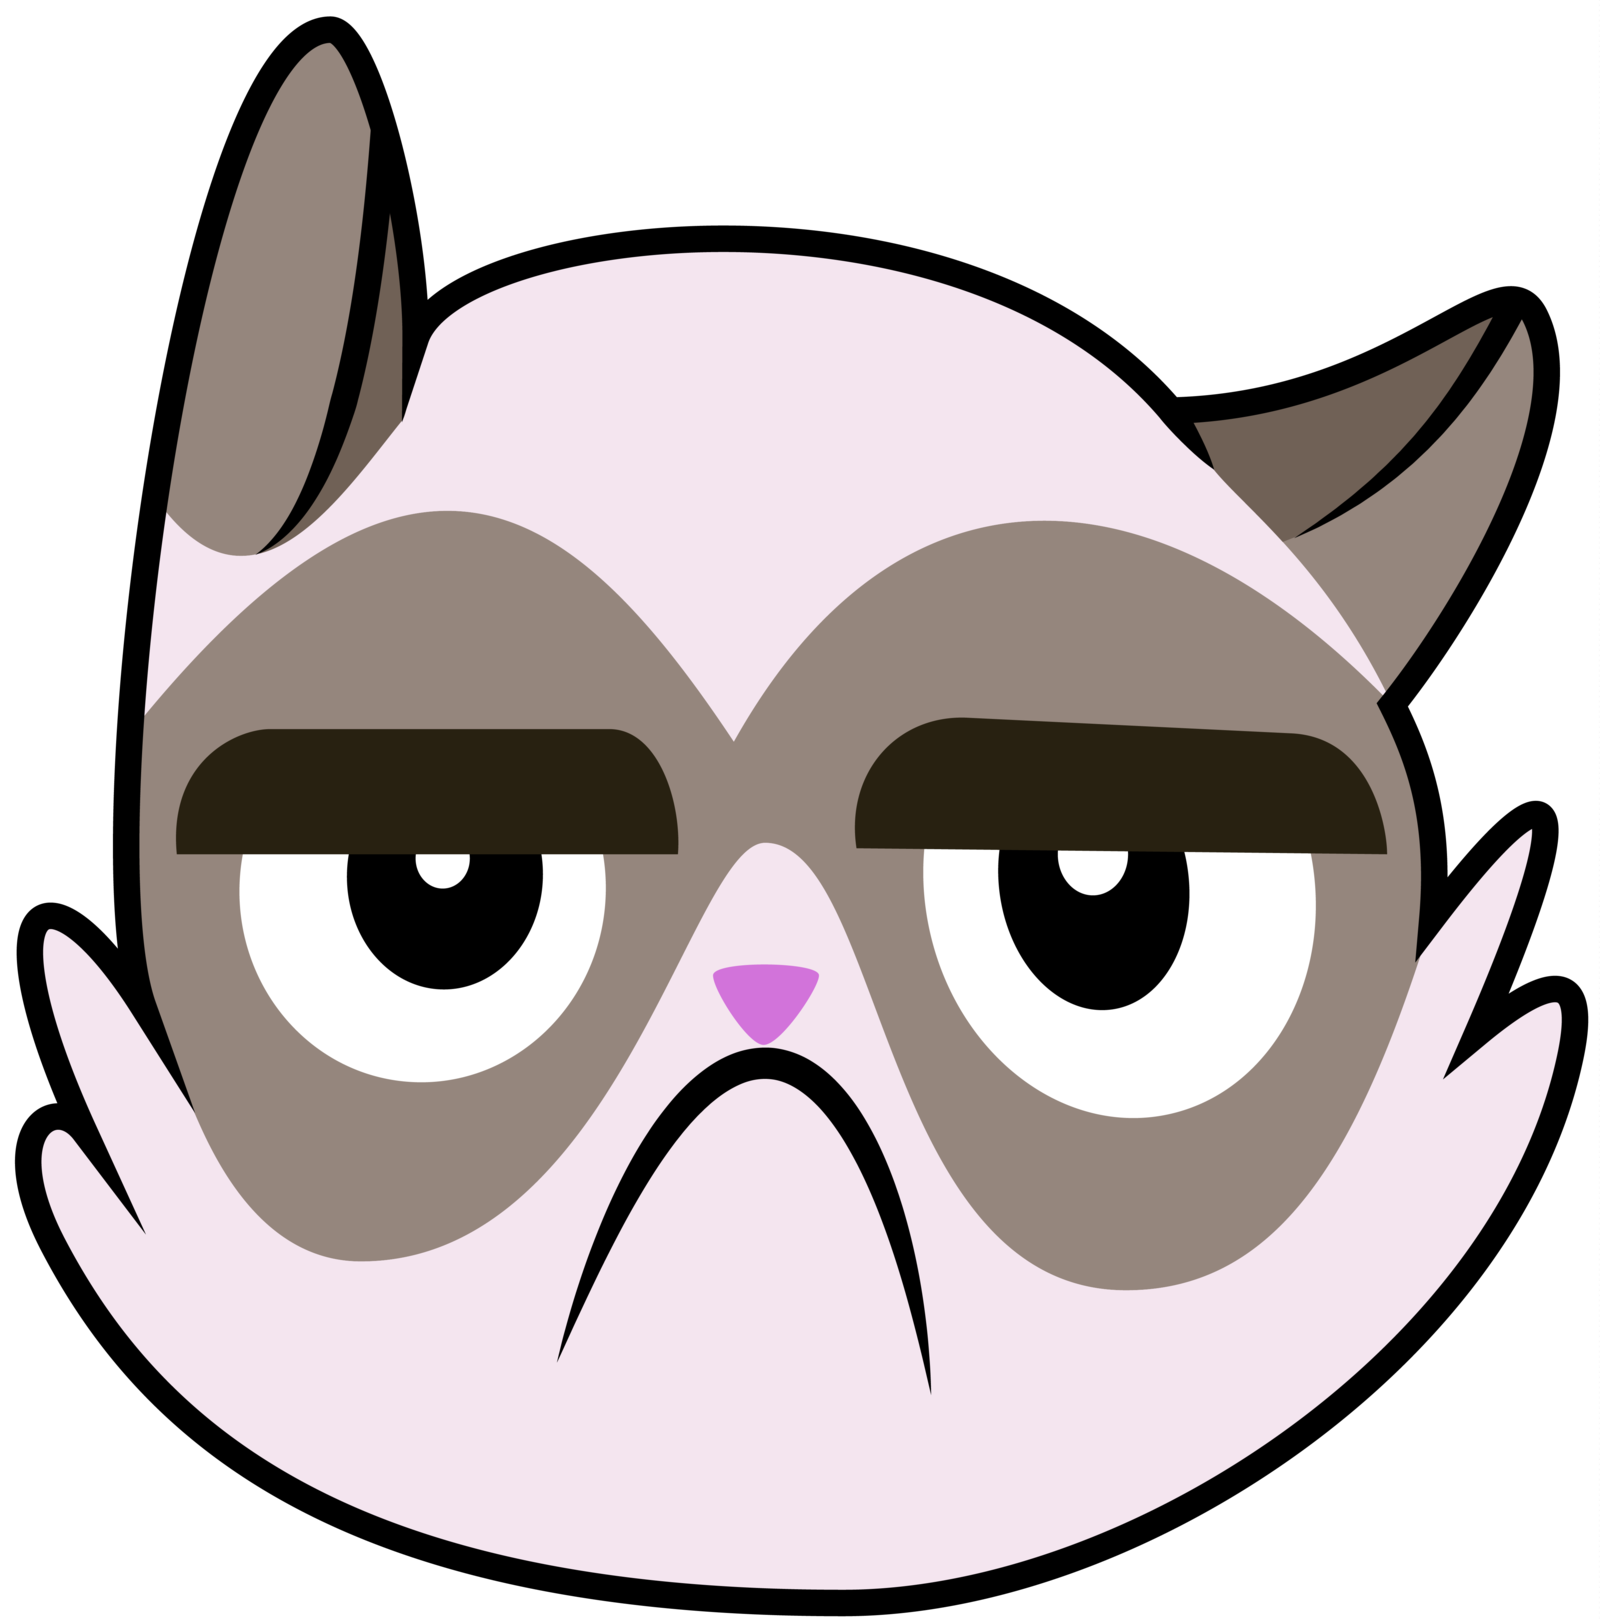 Grumpy Cat Face Clipart Black And Whiteassesprorj